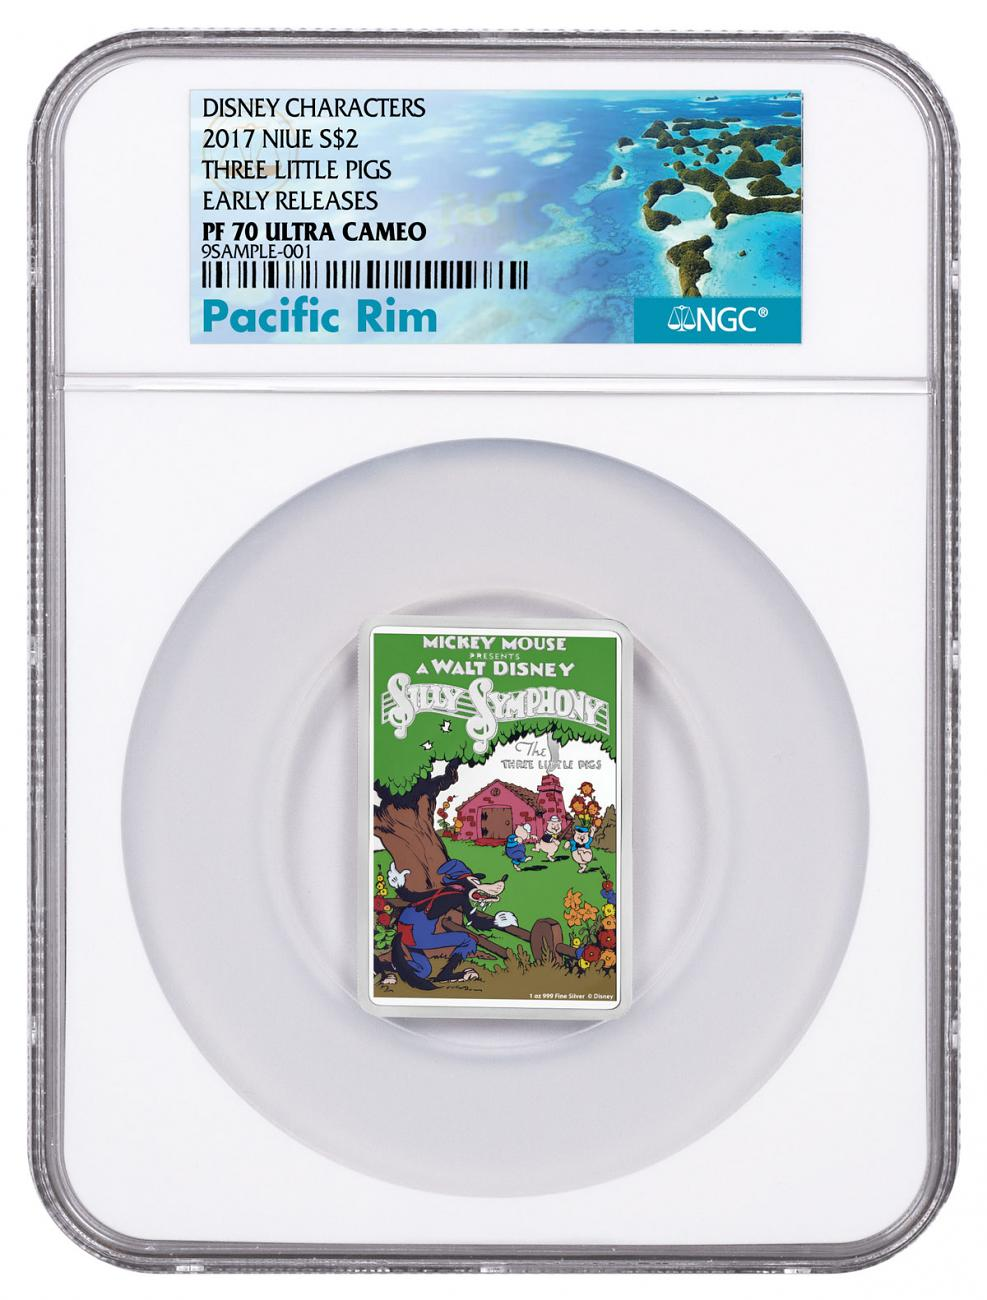 2017 Niue Disney Posters of the 1930s - Three Little Pigs Rectangle 1 oz Silver Colorized Proof $2 Coin NGC PF70 UC ER Exclusive Pacific Rim Label